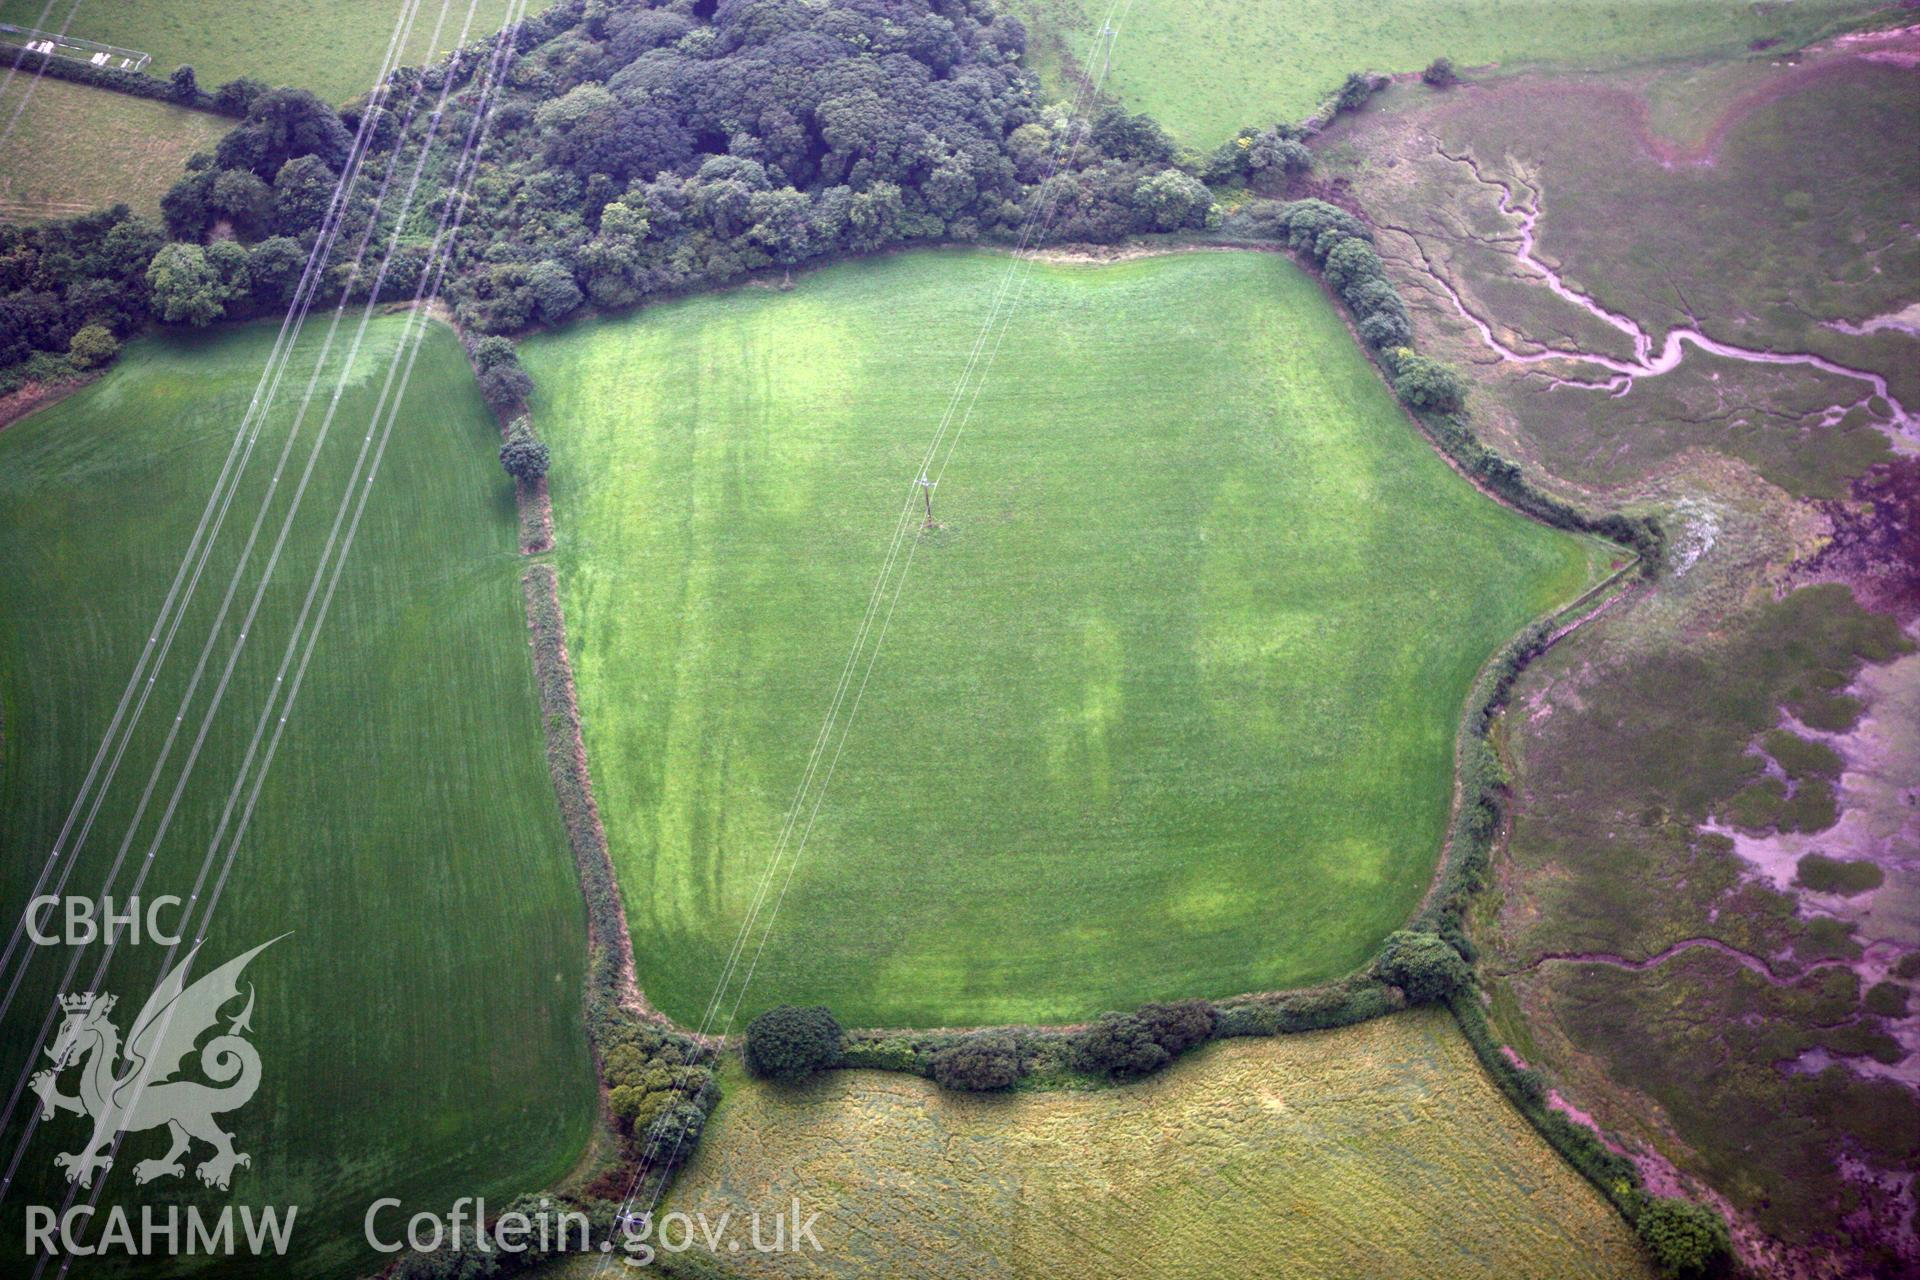 RCAHMW colour oblique photograph of Brownslate, cropmarks of possible enclosure. Taken by Toby Driver on 23/07/2010.